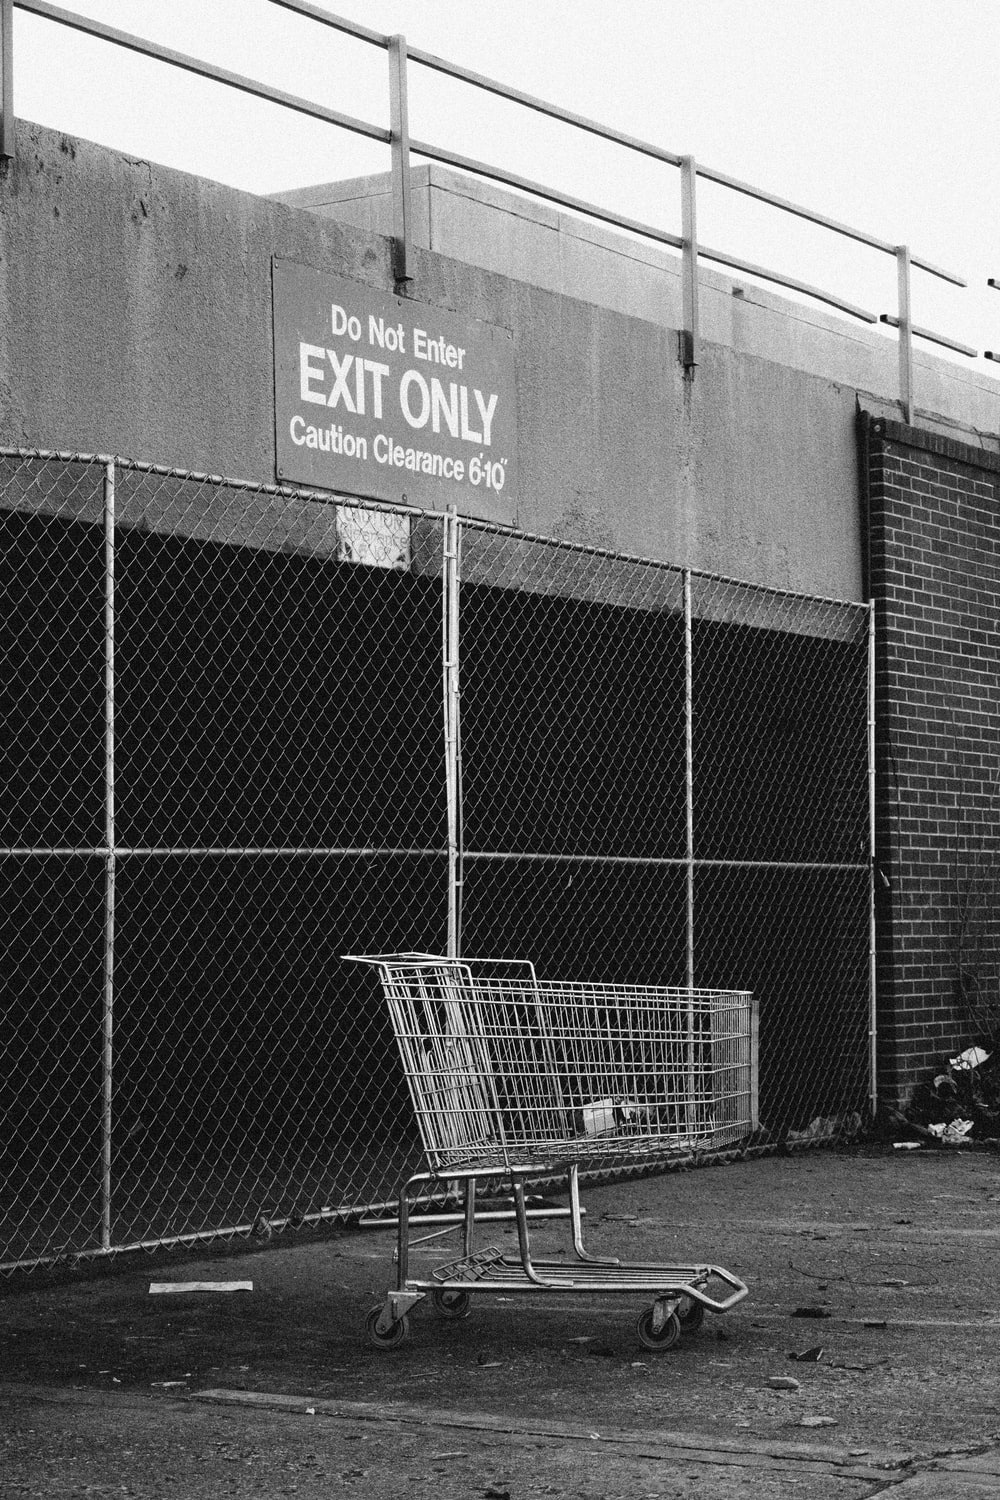 grayscale photo of shopping cart near building